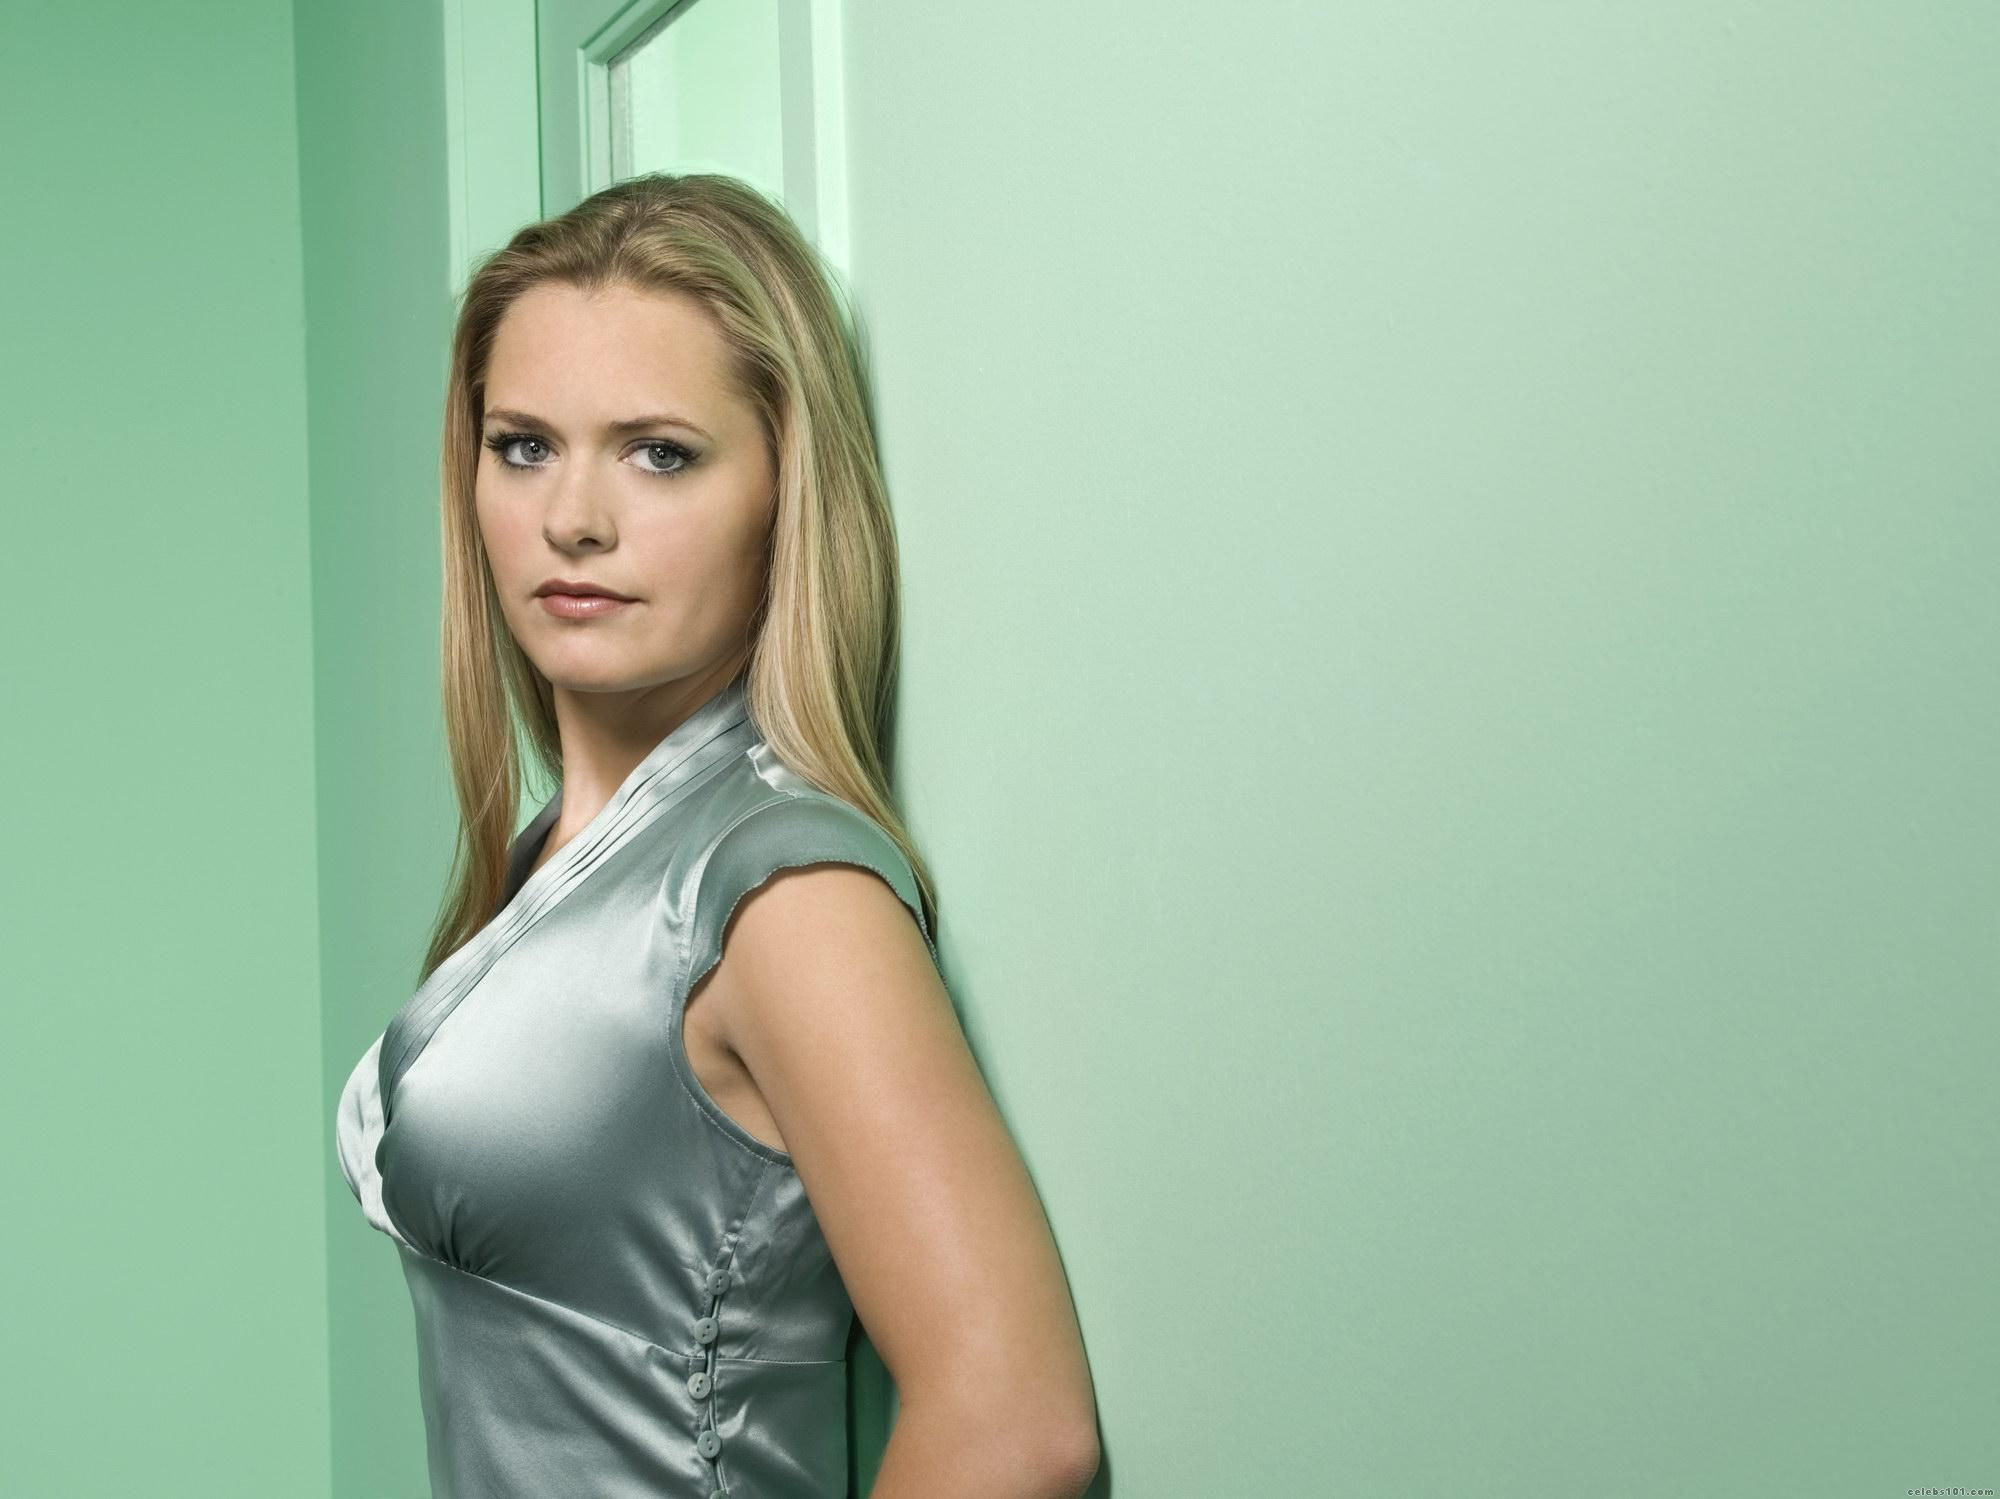 Maggie Lawson Nude Pictures Ele maggie lawson august 12 1980 | happy birthday!!!!!!!!!! <3